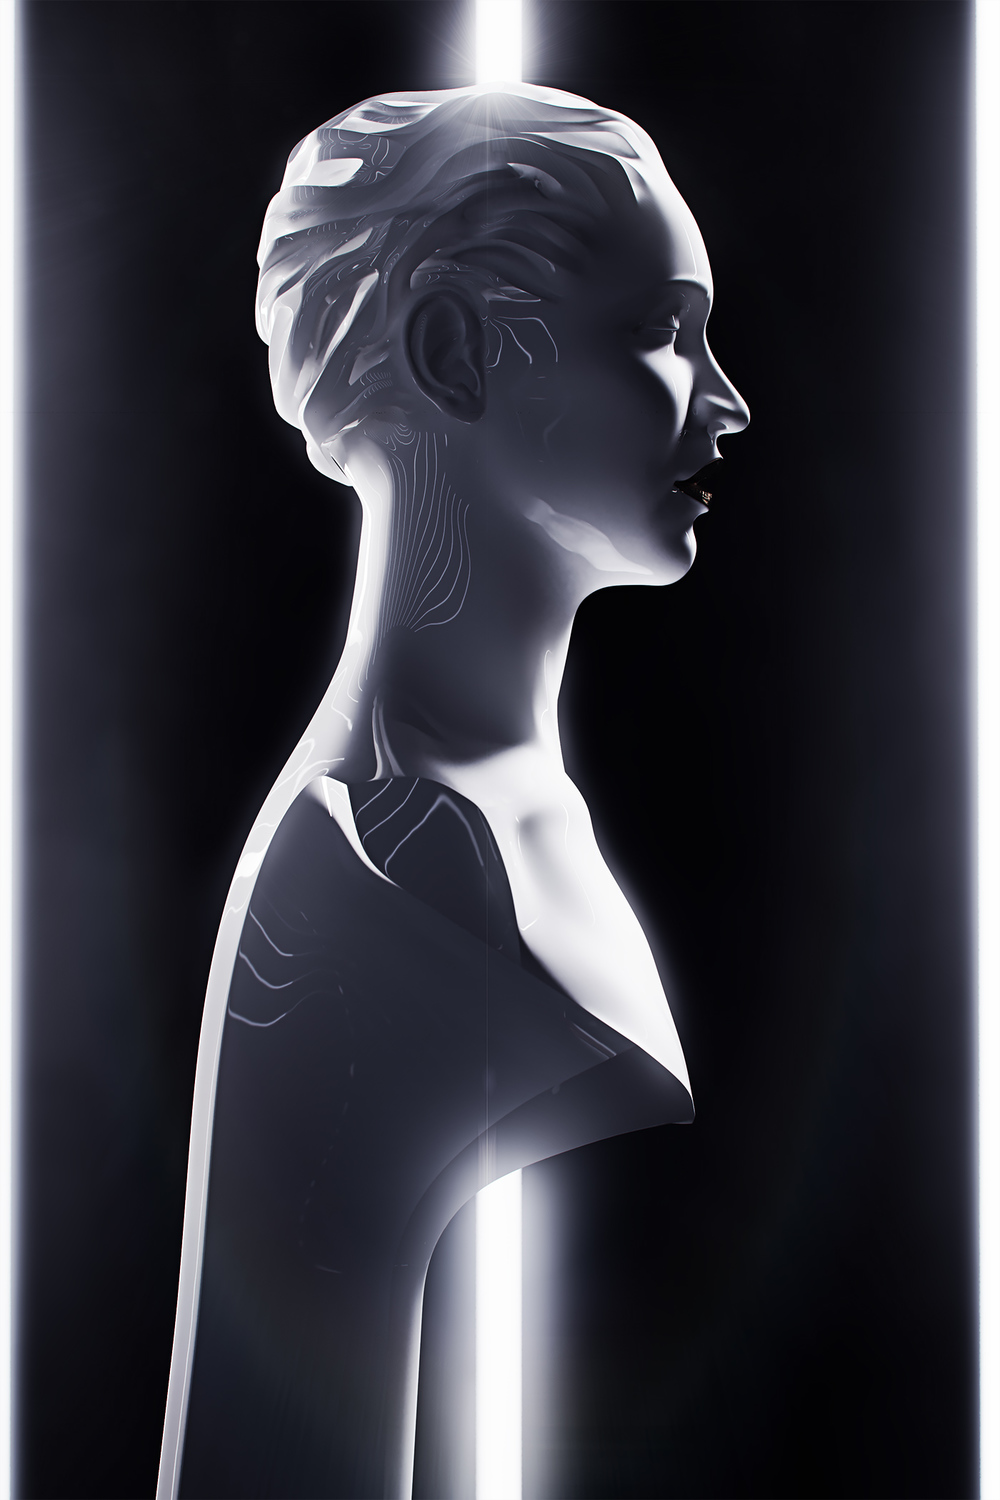 Sculpture, portrait of a Singer 3